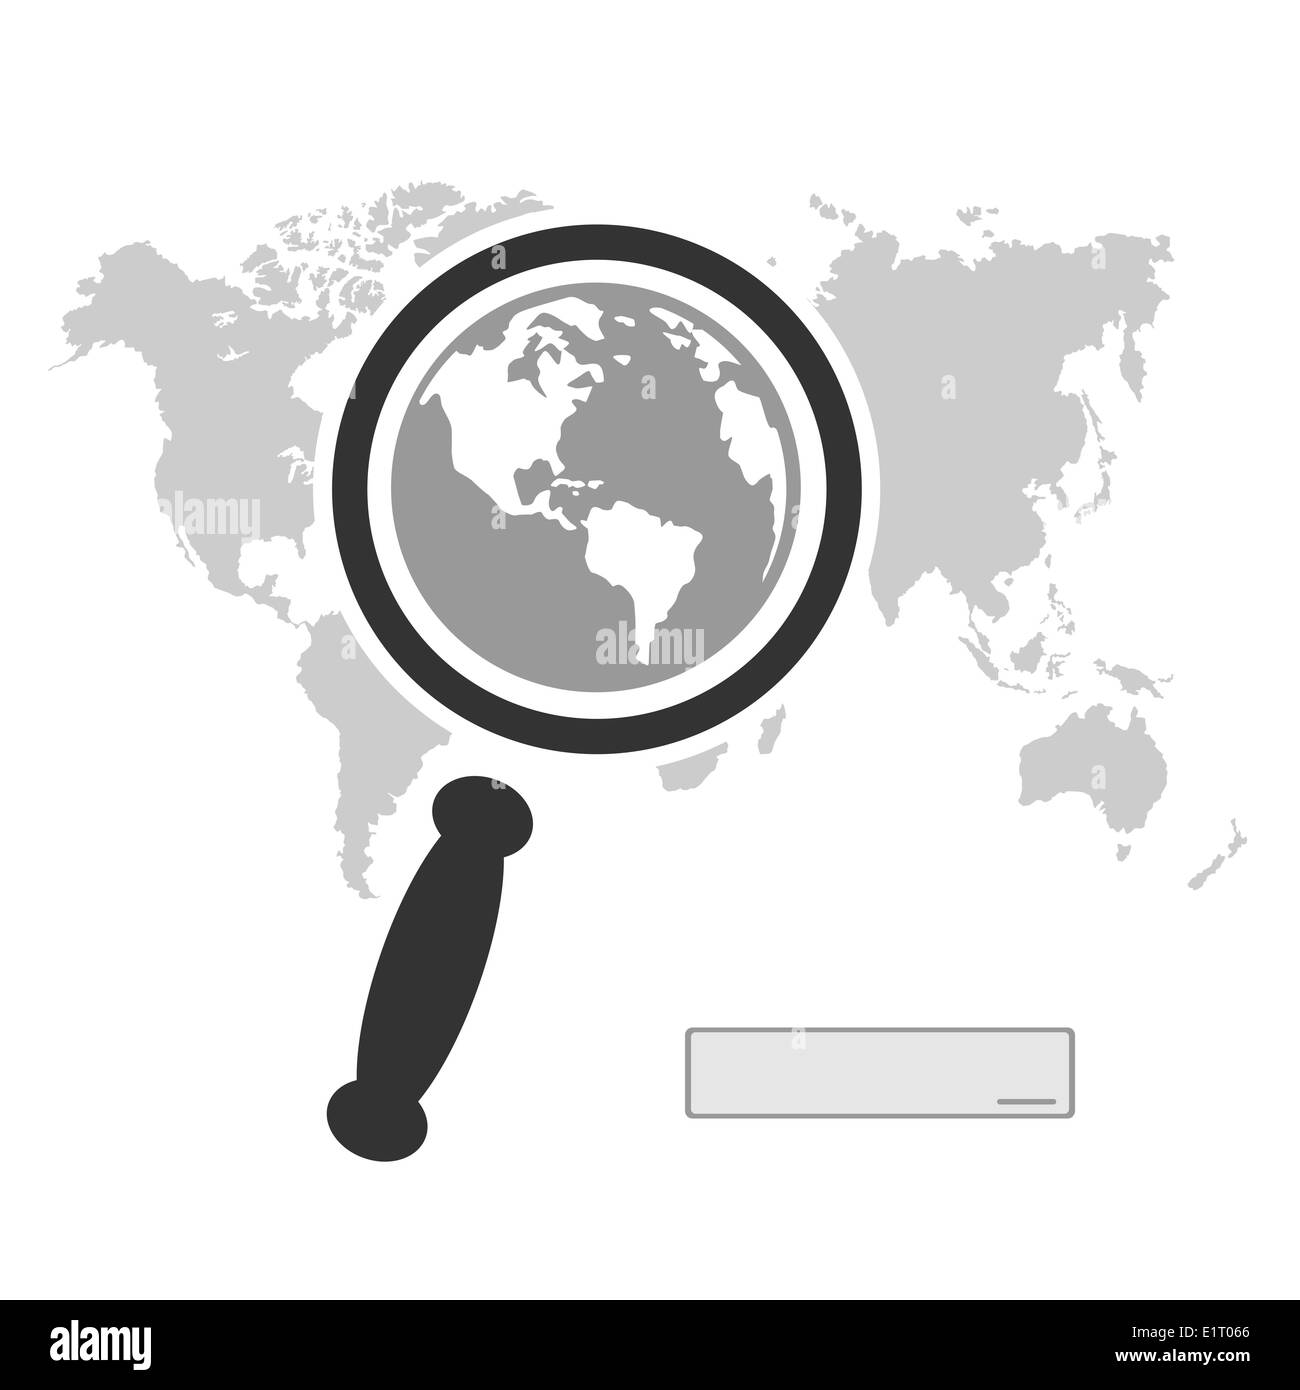 Search the entire planet - Stock Image